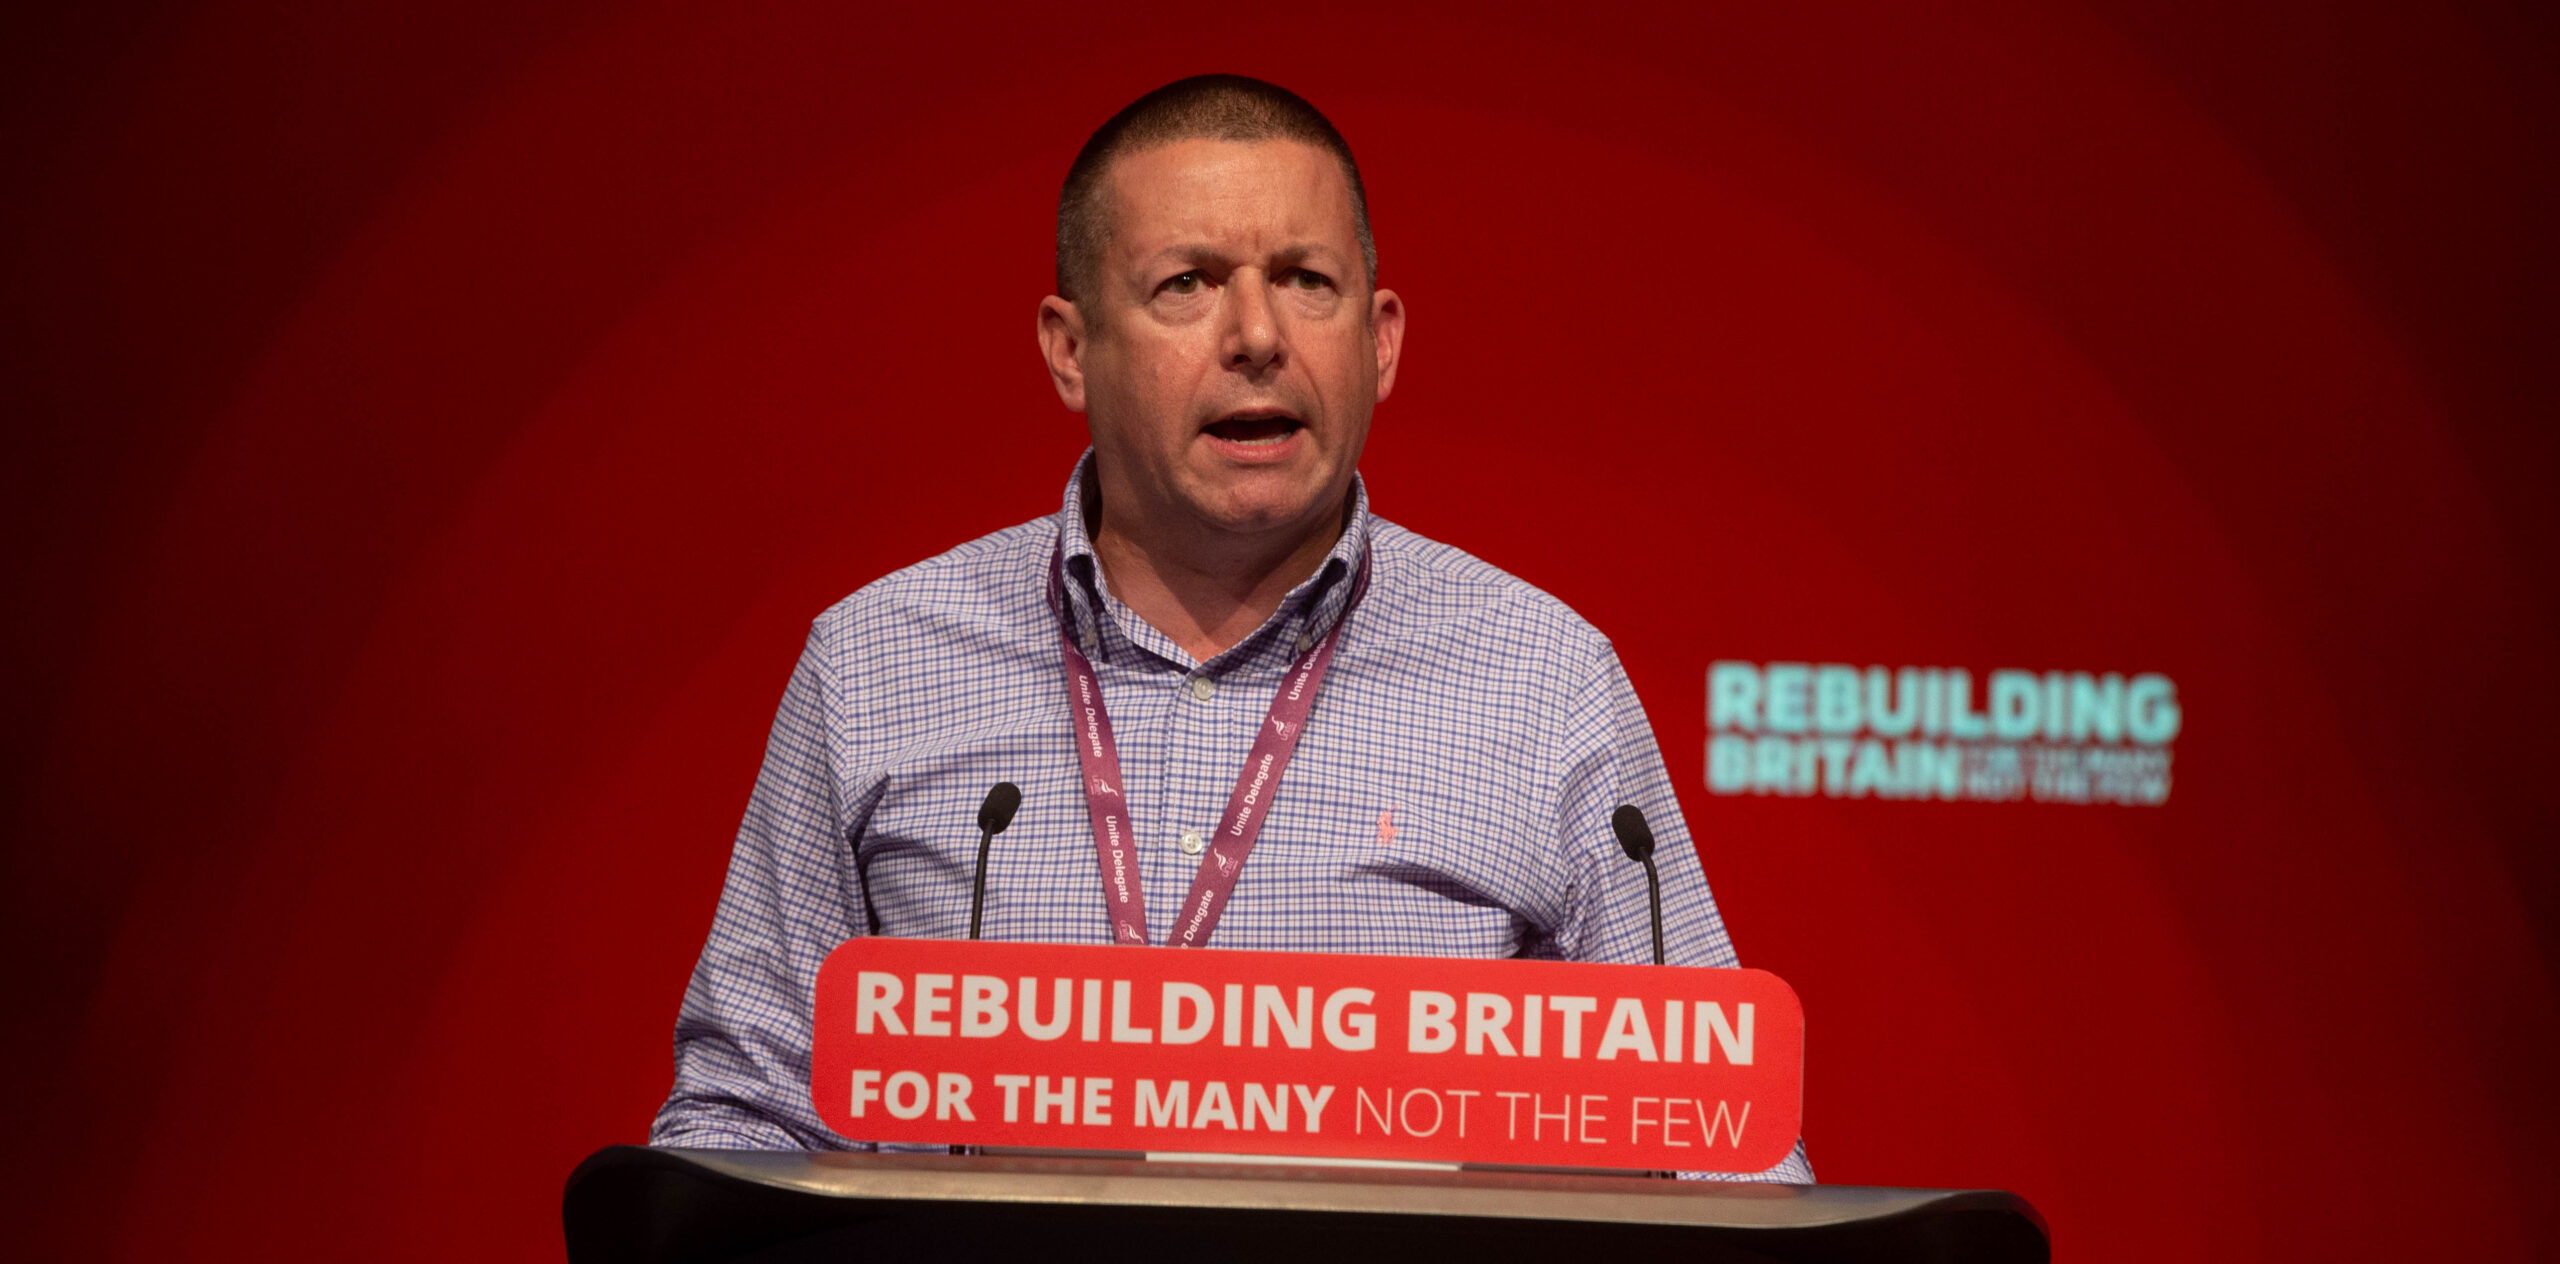 UNITE: We call on Graham and Turner to stand down and support Howard Beckett